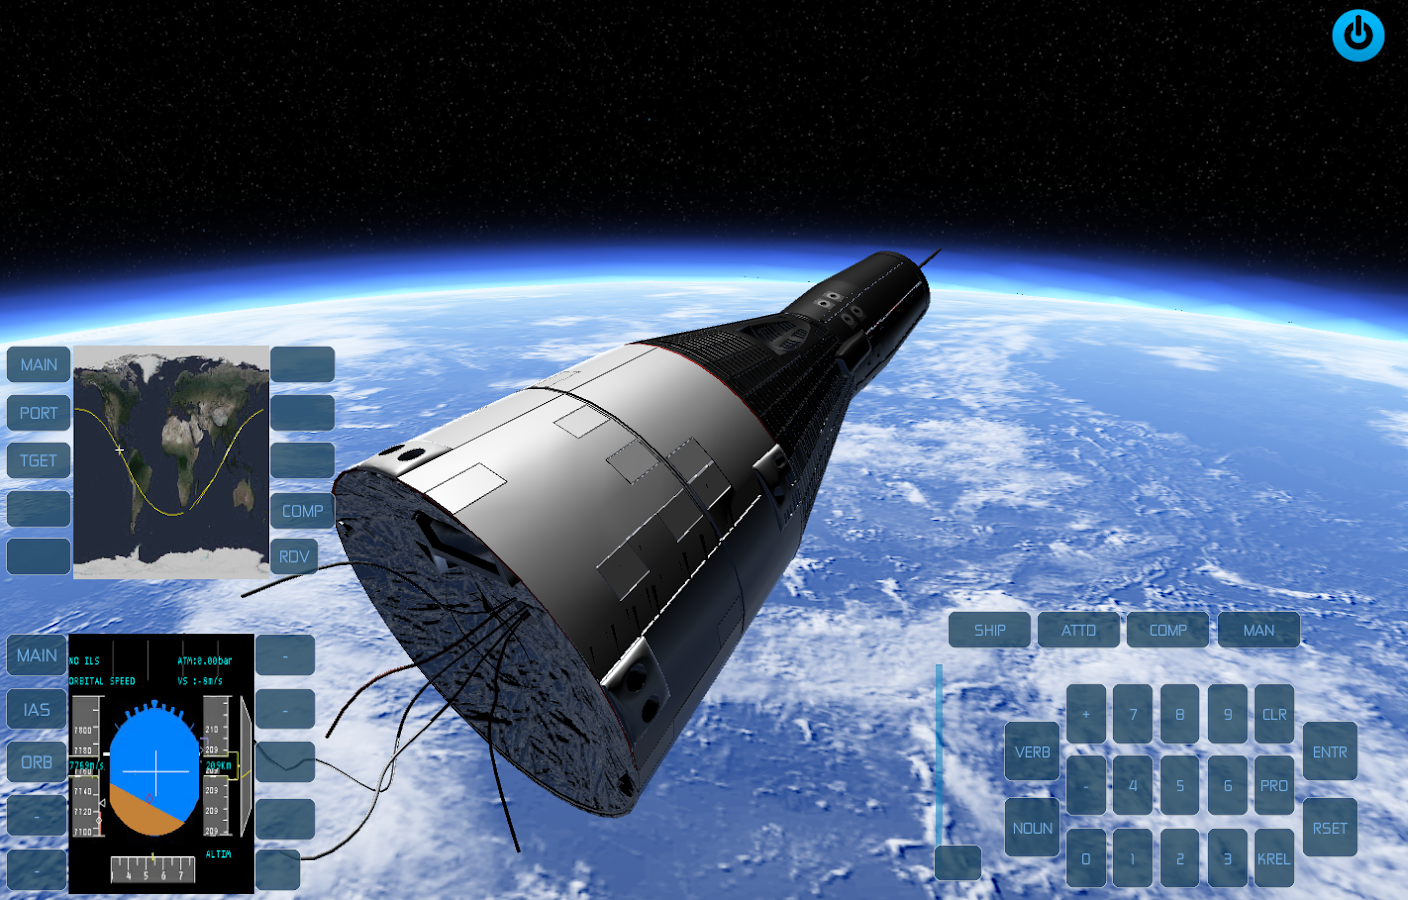 space shuttle simulator hd apk - photo #18